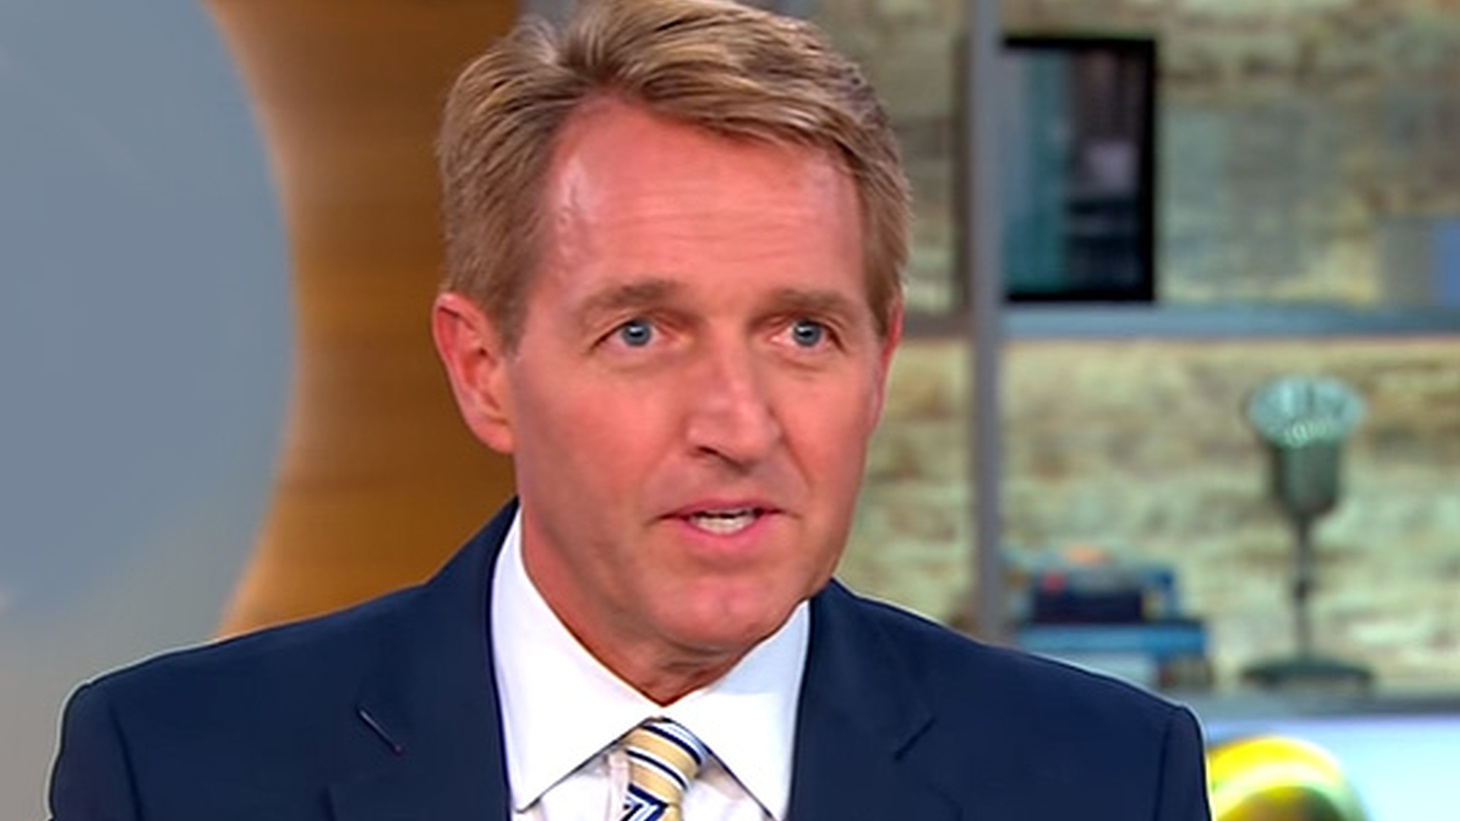 One possible target for President Trump tonight in Phoenix is a US Senator from his own party.       Arizona's Republican US Senator  Jeff Flake  is the perfect model of past Republican figures: a gentlemanly family man who's happy to compromise and work closely with Democrats. He's also a never-Trump Republican who never gave in. Is that a…